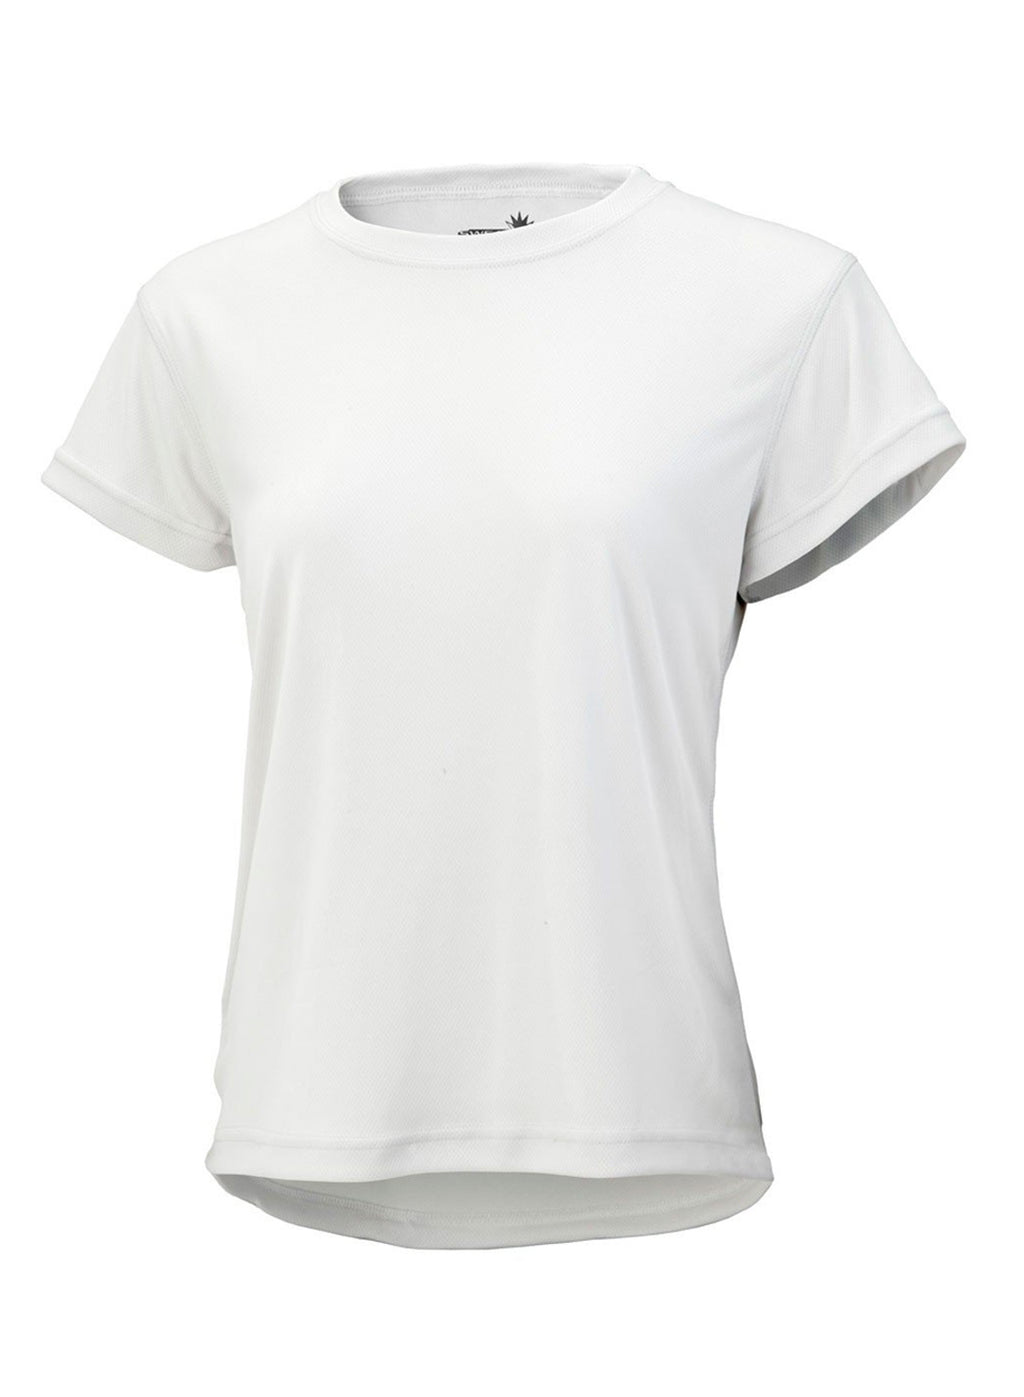 Women's Short Sleeve Race Shirt